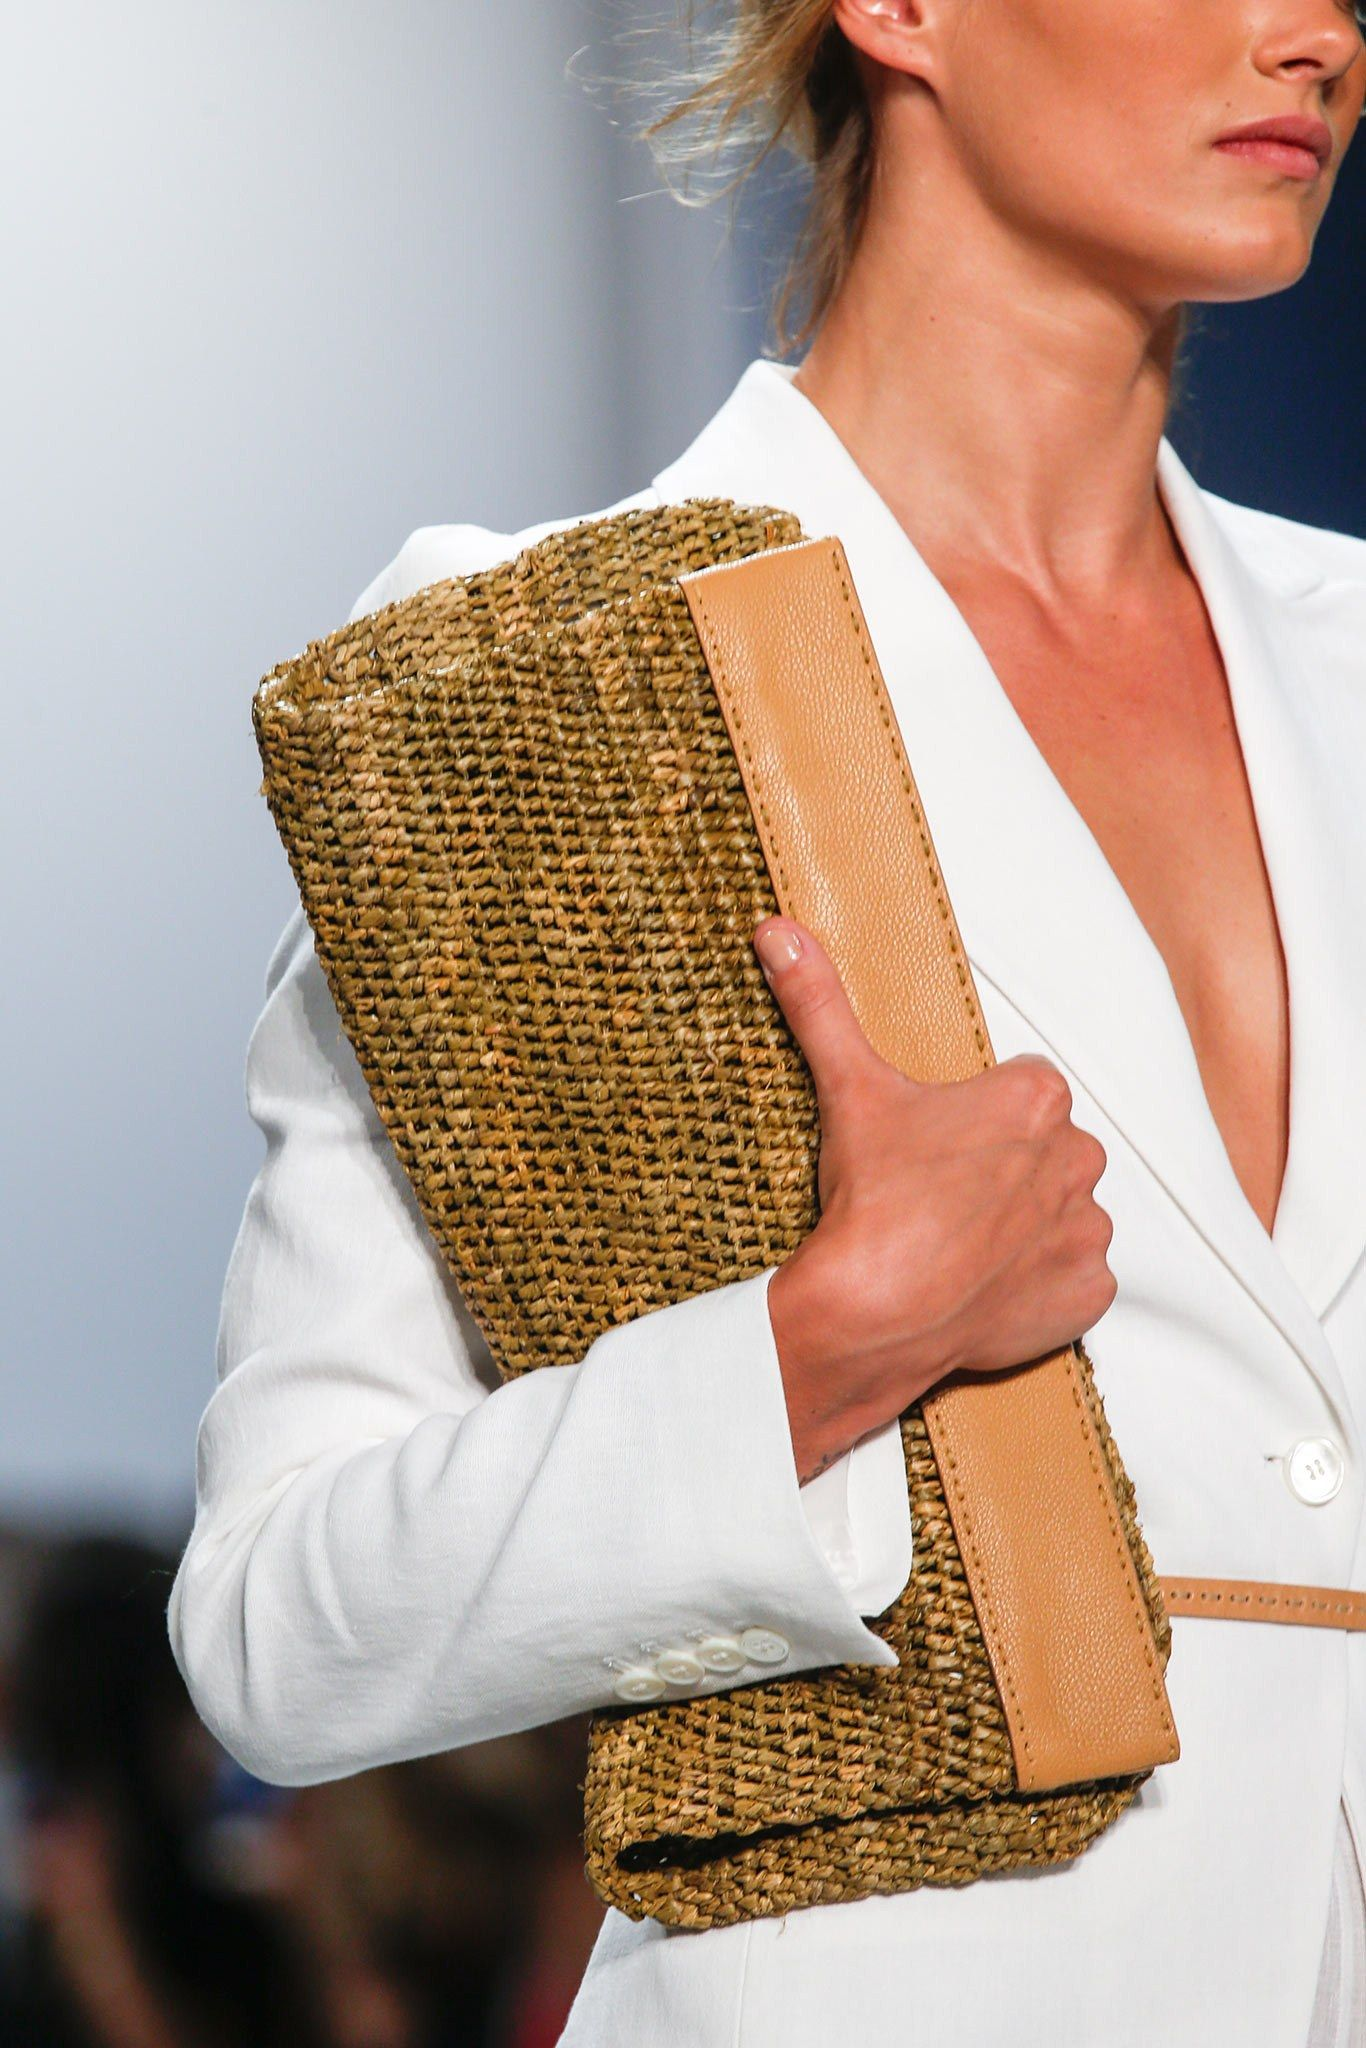 Michael Kors Collection Spring 2014 Ready-to-Wear Fashion Show